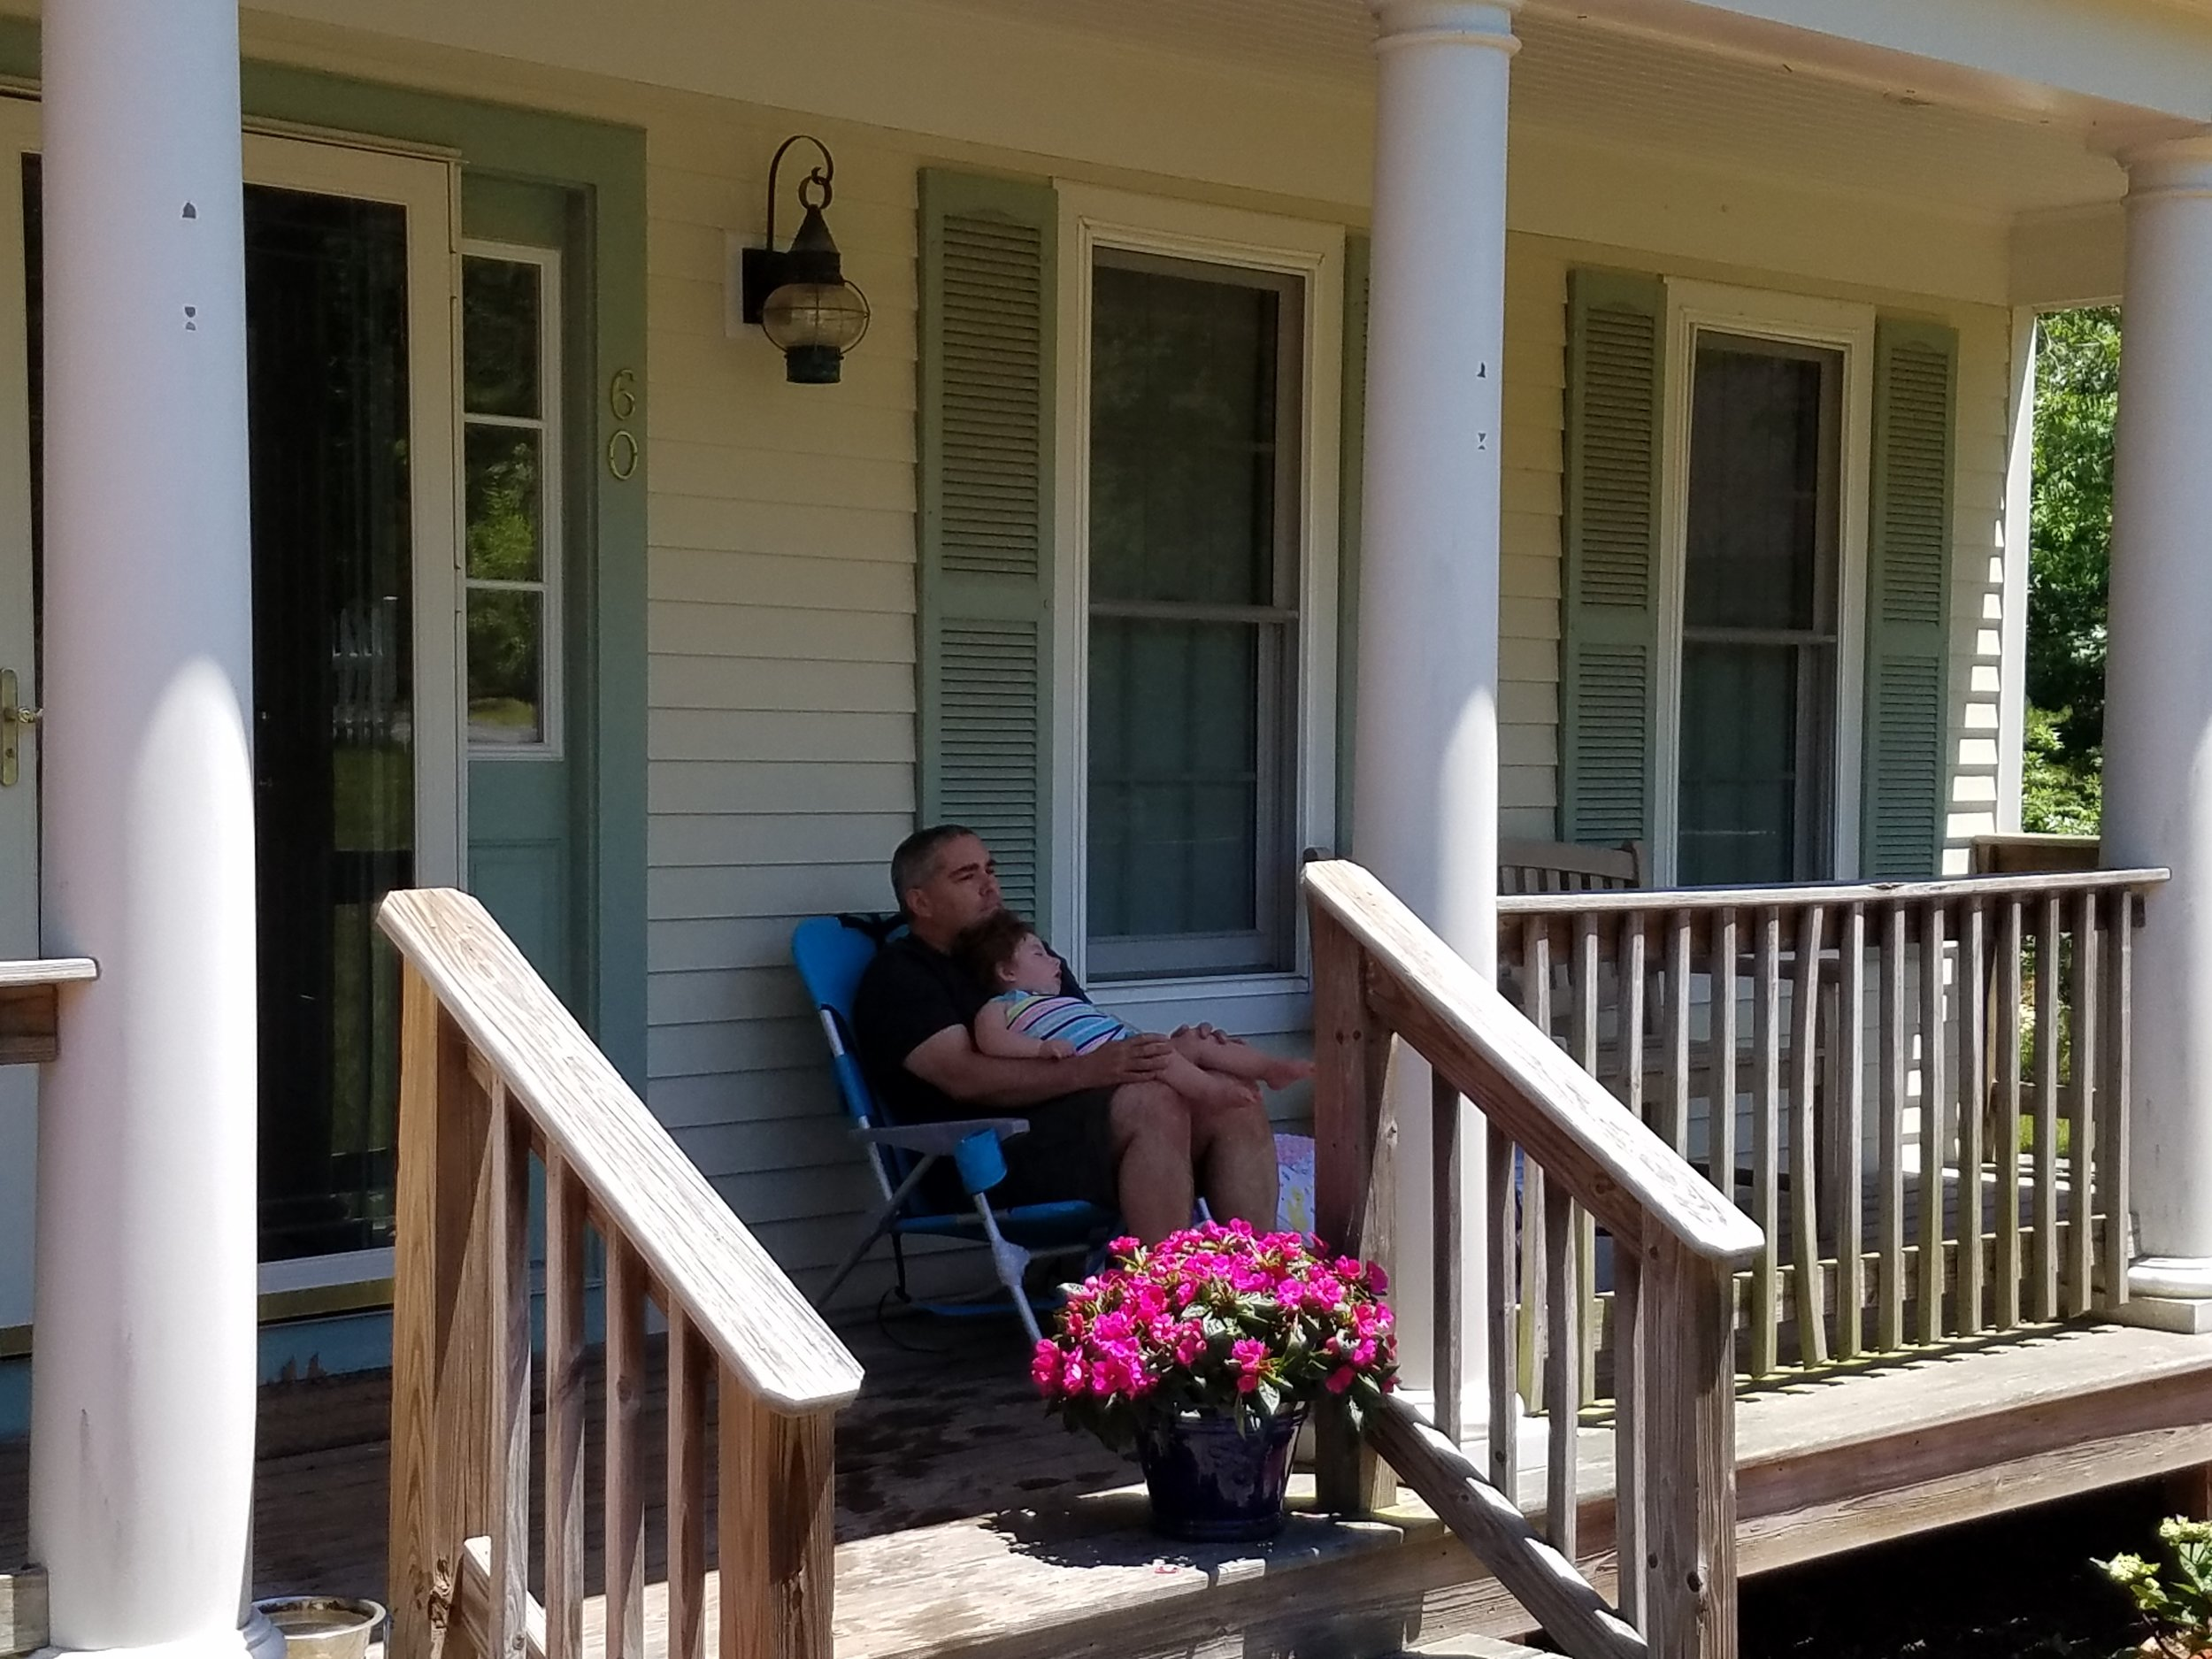 Leila and her dad relax on porch